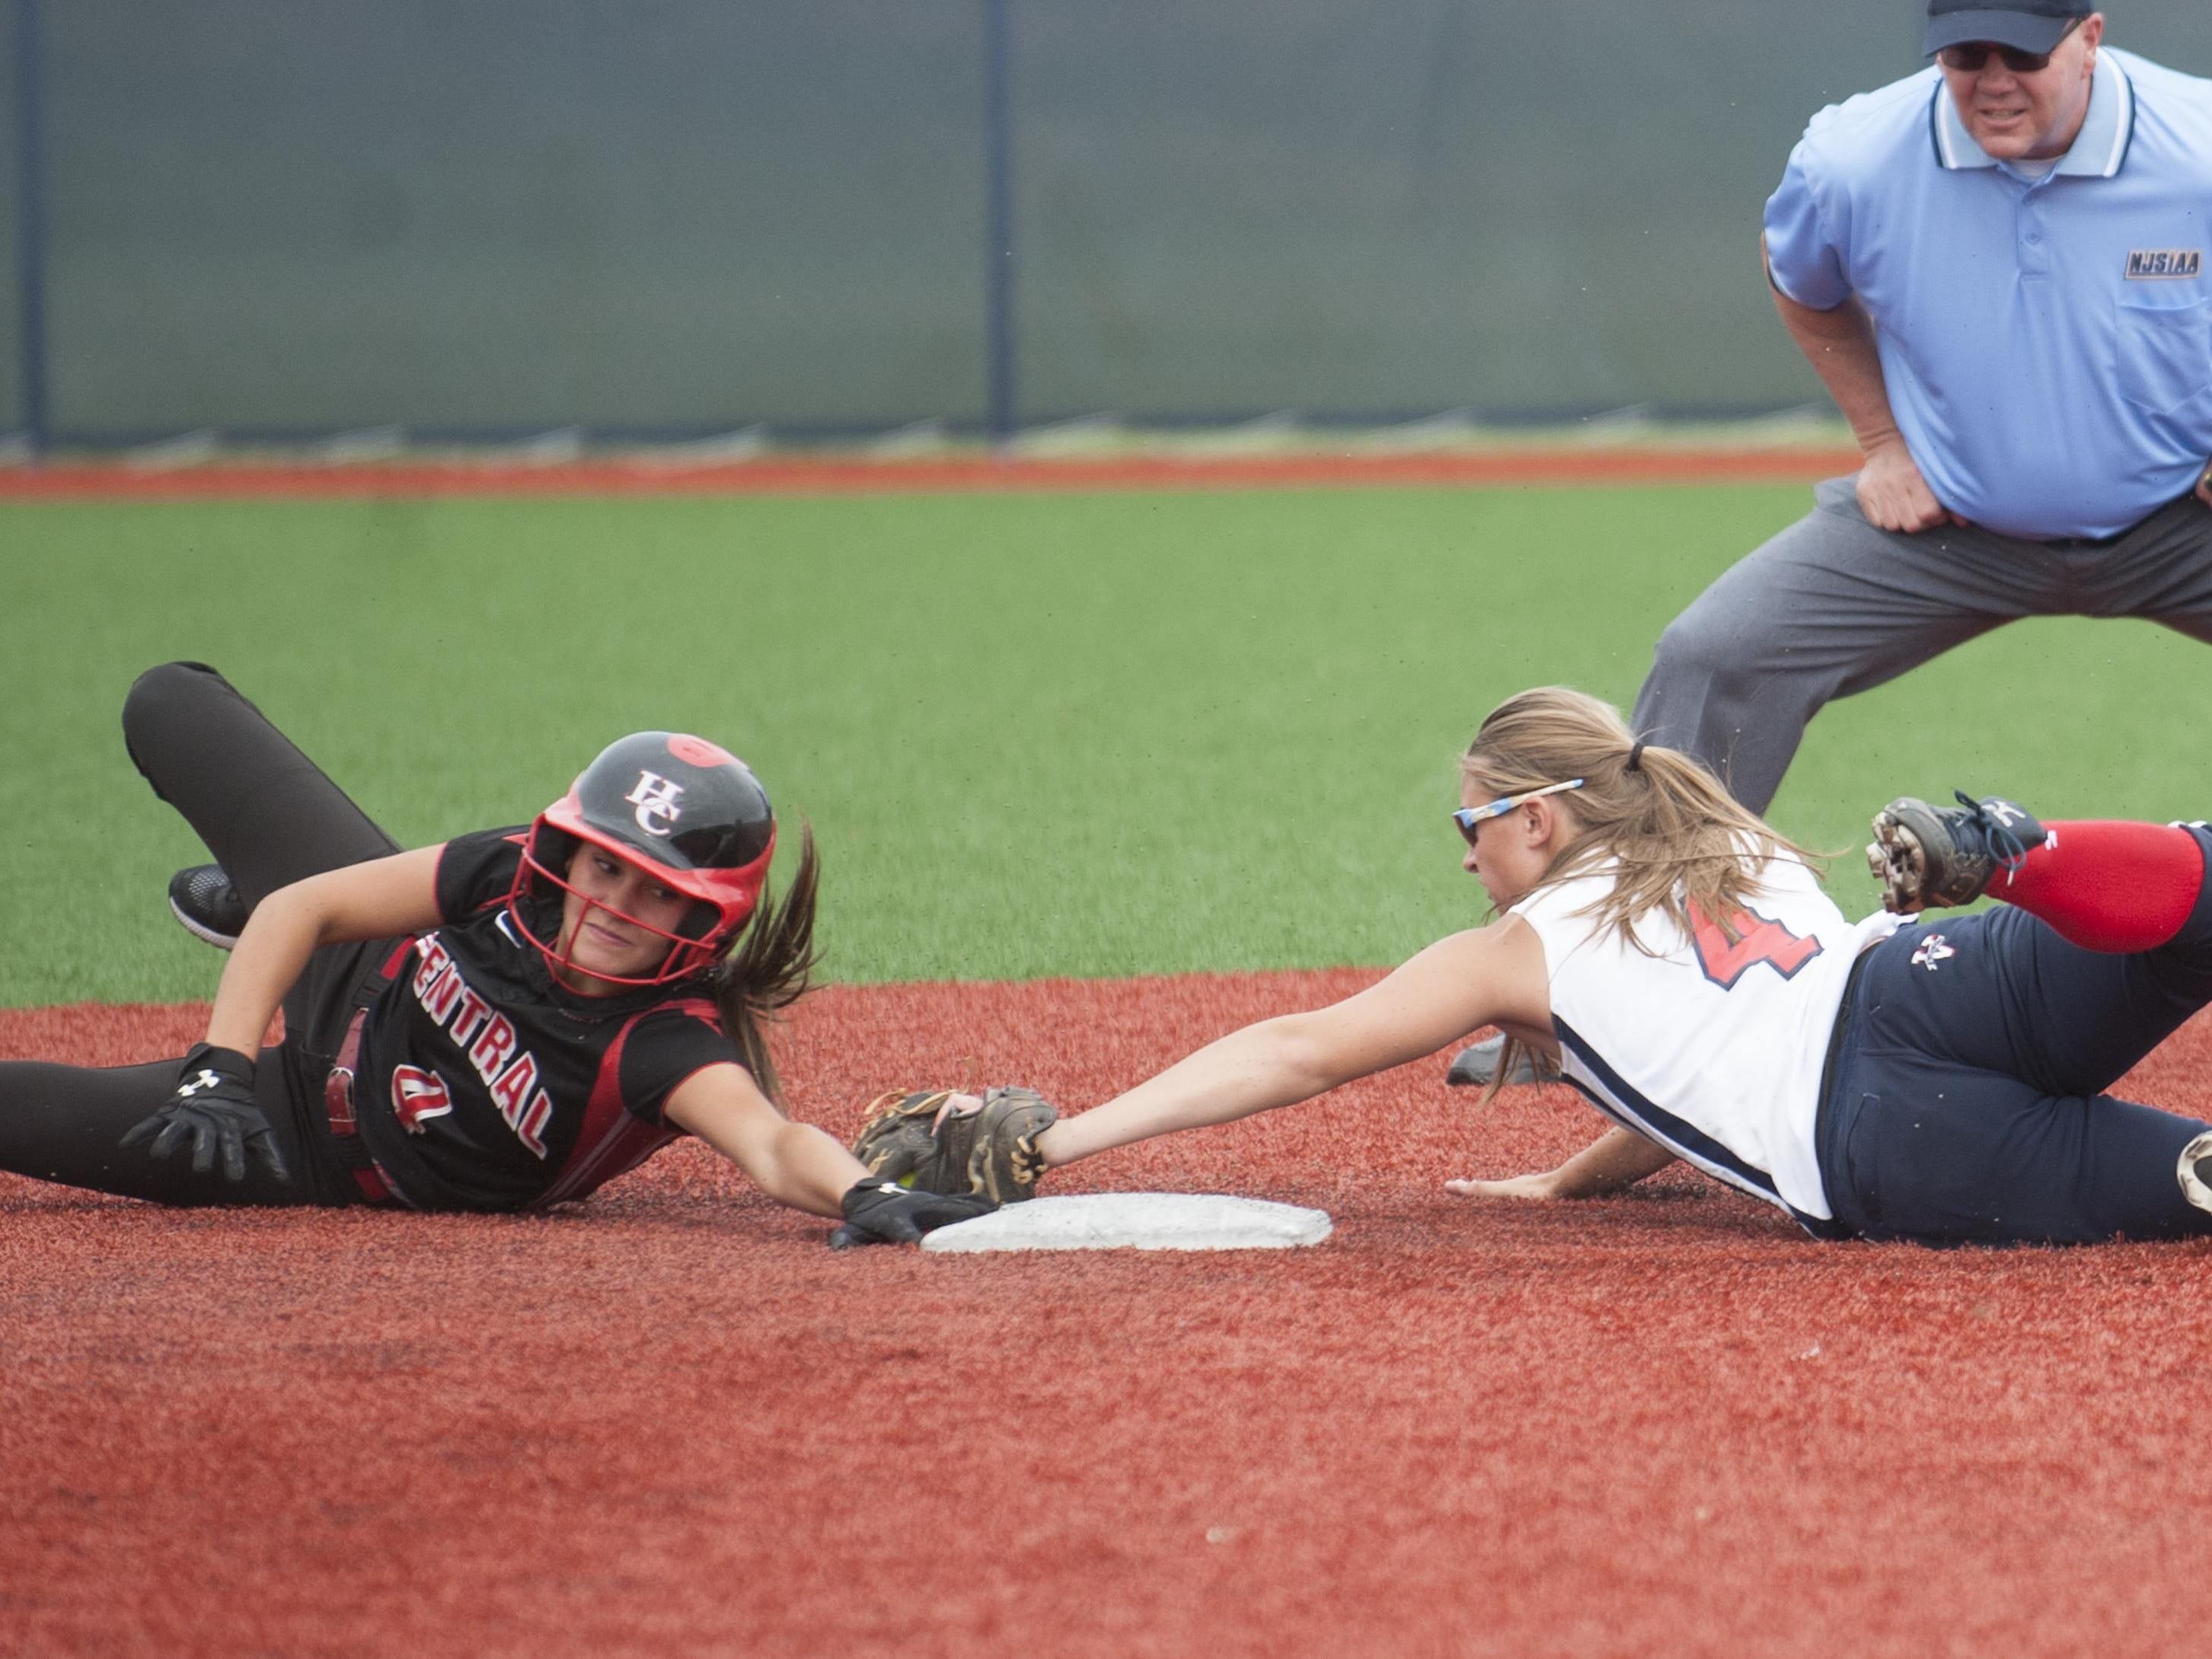 Washington Township's Jessica Hughes, right, tags out Hunterdon Central's Ally Hernandez as Hernandez attempts to steal 2nd base during the state group 4 softball semifinal game between Washington Township and Hunterdon Central played at Eastern High School on Thursday. Washington Township won 10-0. 06.03.15